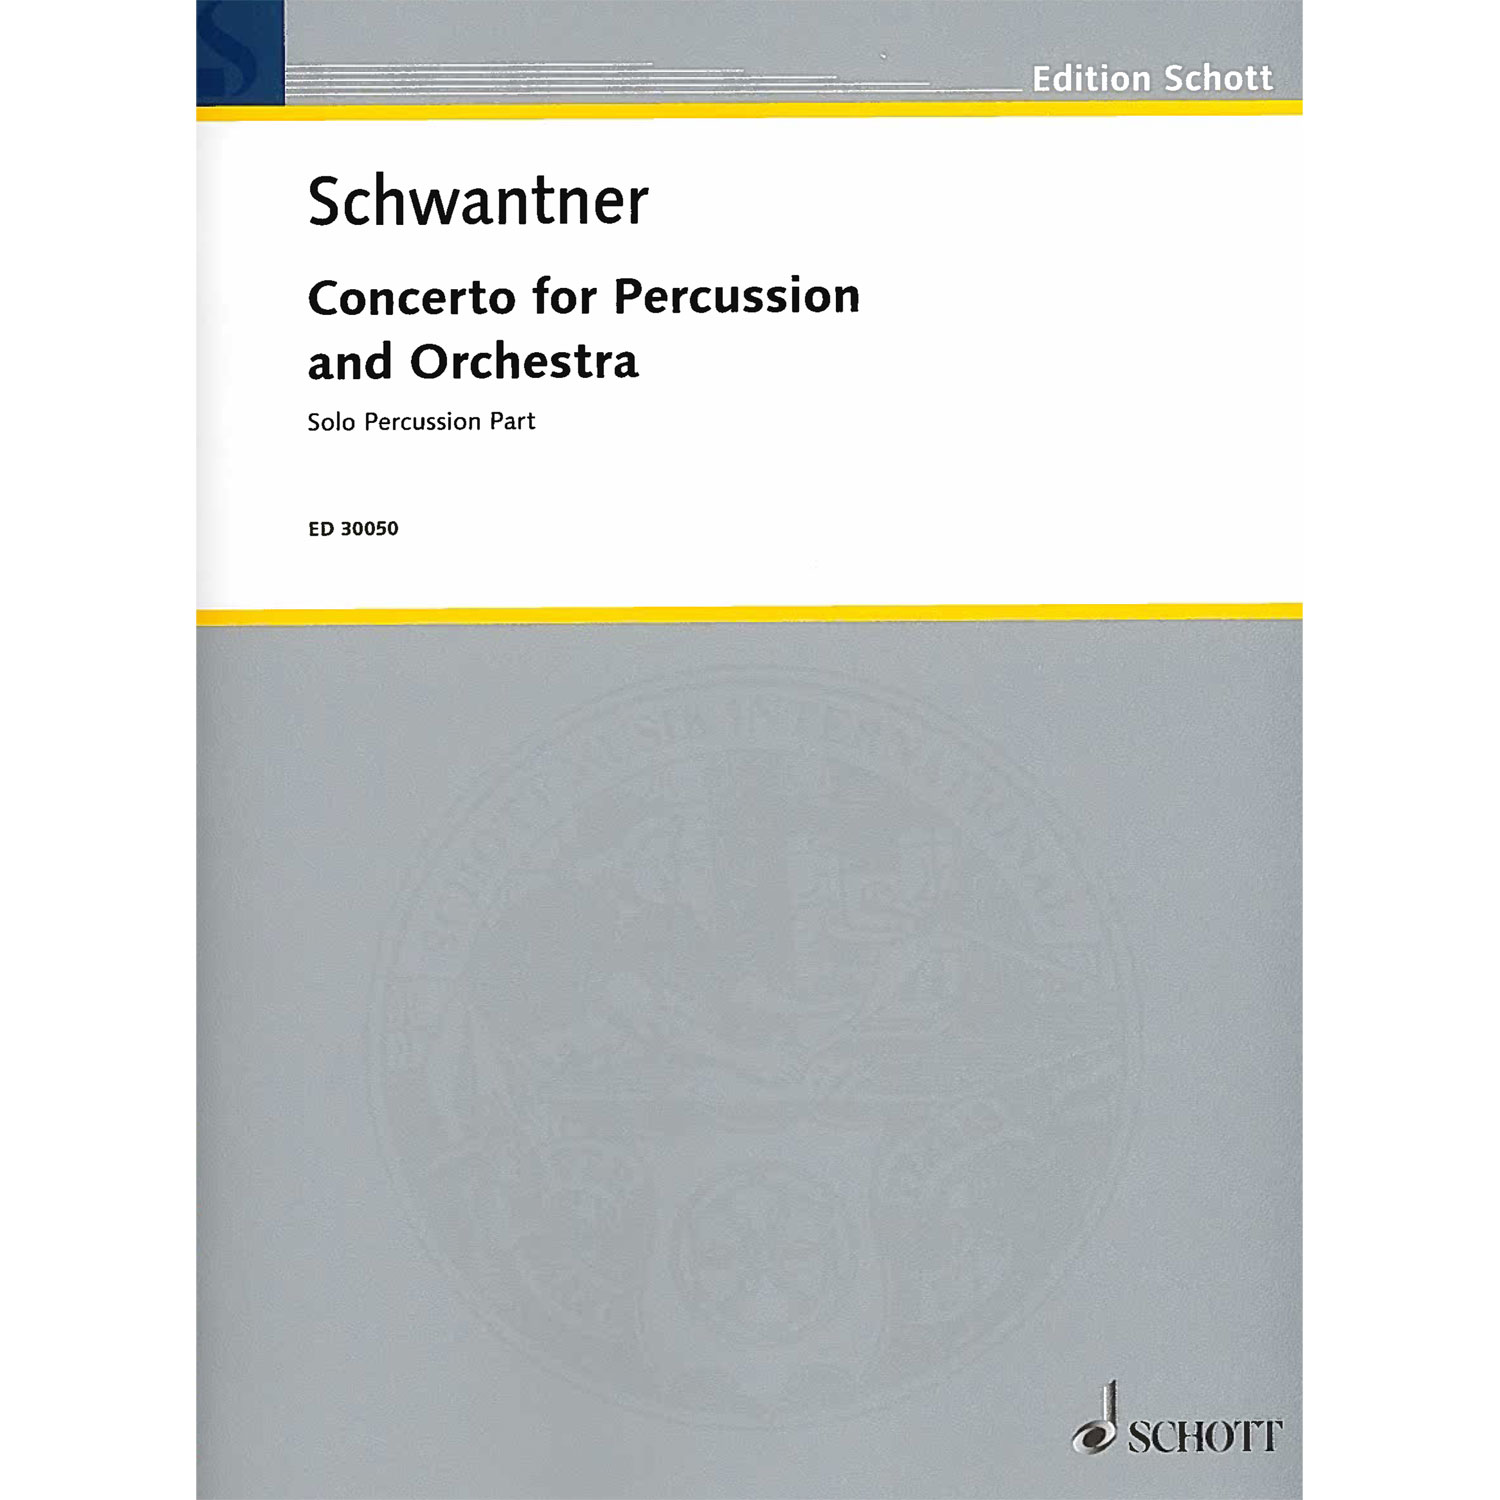 Percussion Concerto No. 1 (Solo Part Only) by Joseph Schwantner